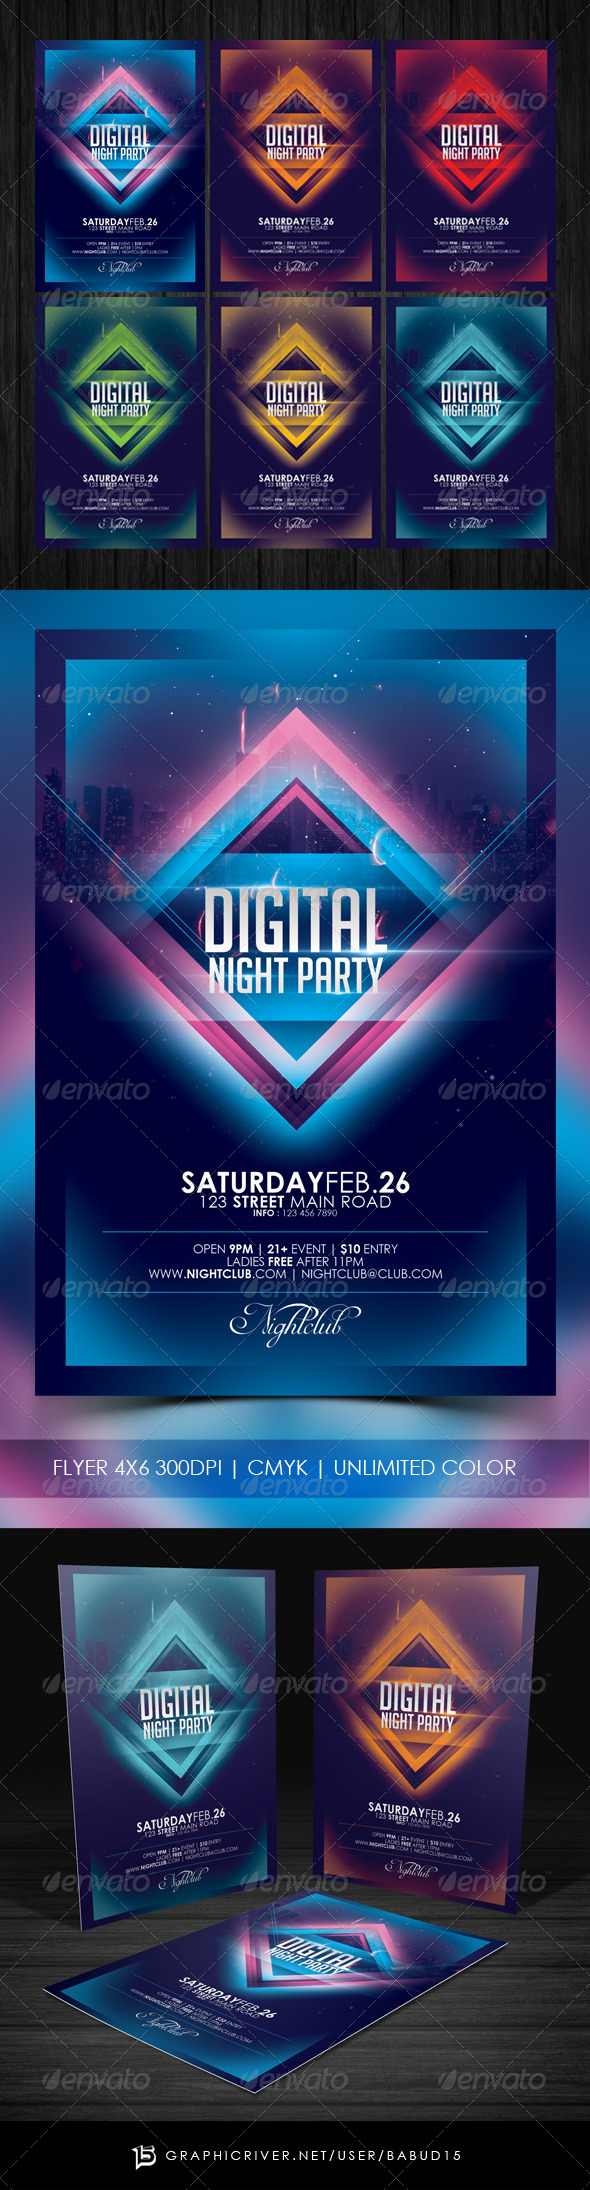 Digital Night Party Flyer Template - Events Flyers